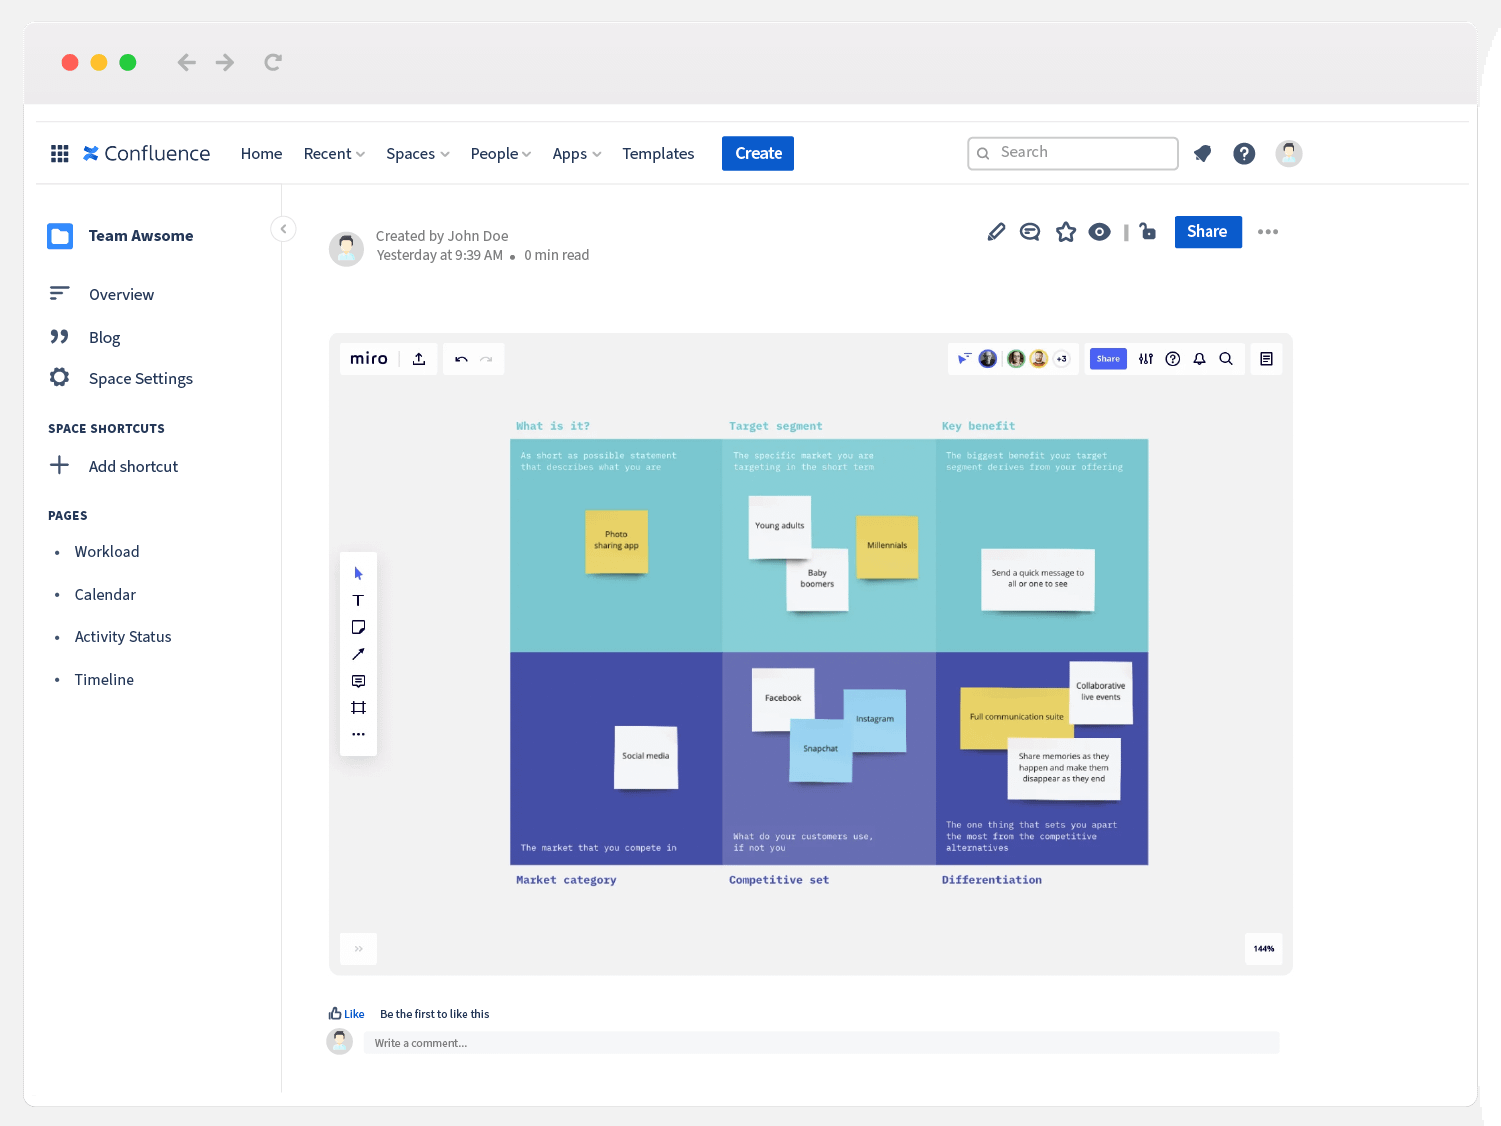 marketing teams often use product positioning templates like this one